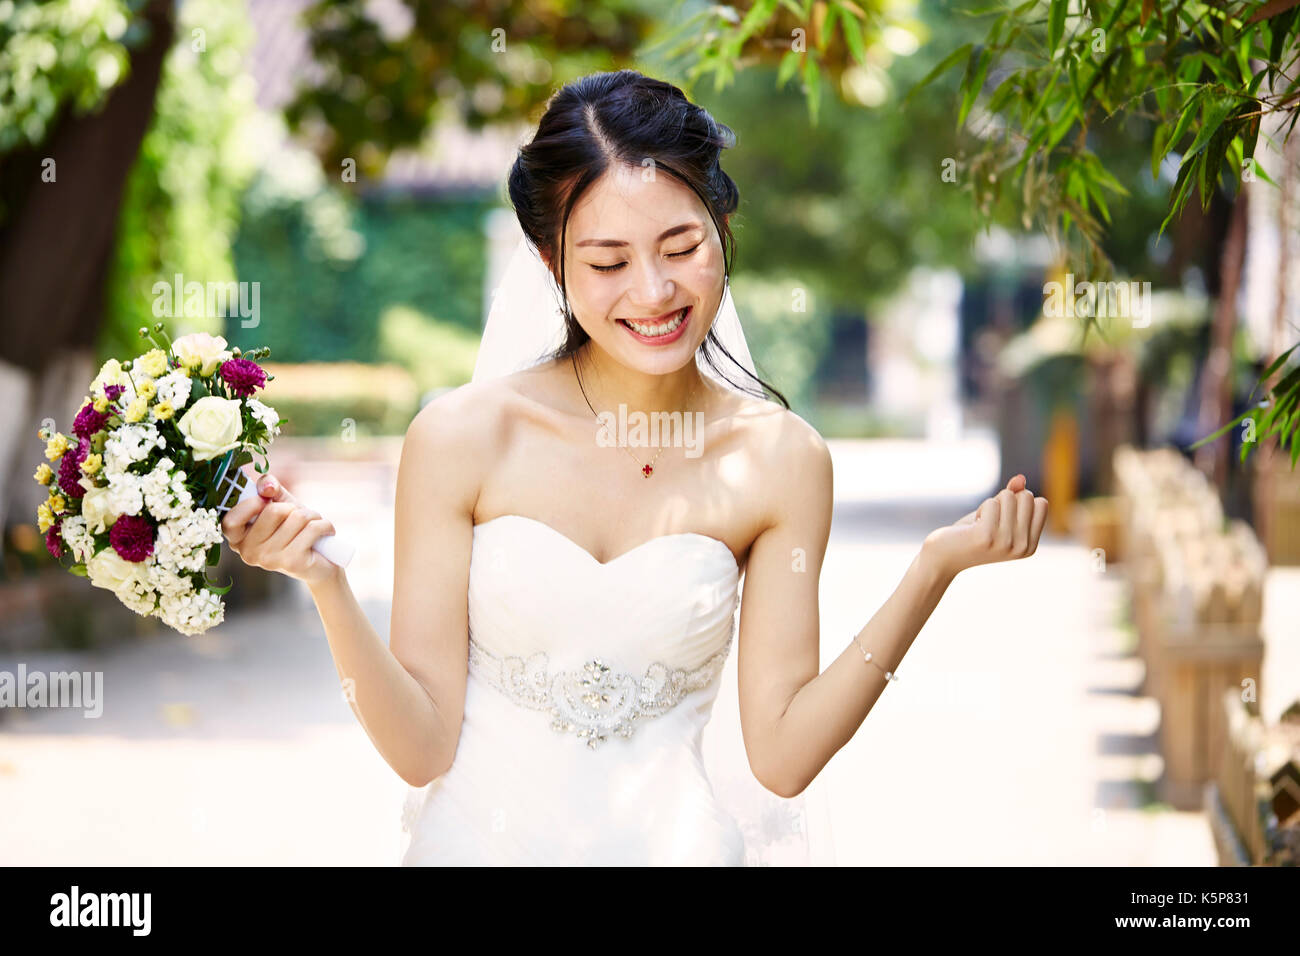 young and beautiful asian bride rejoicing with bouquet in hand. - Stock Image